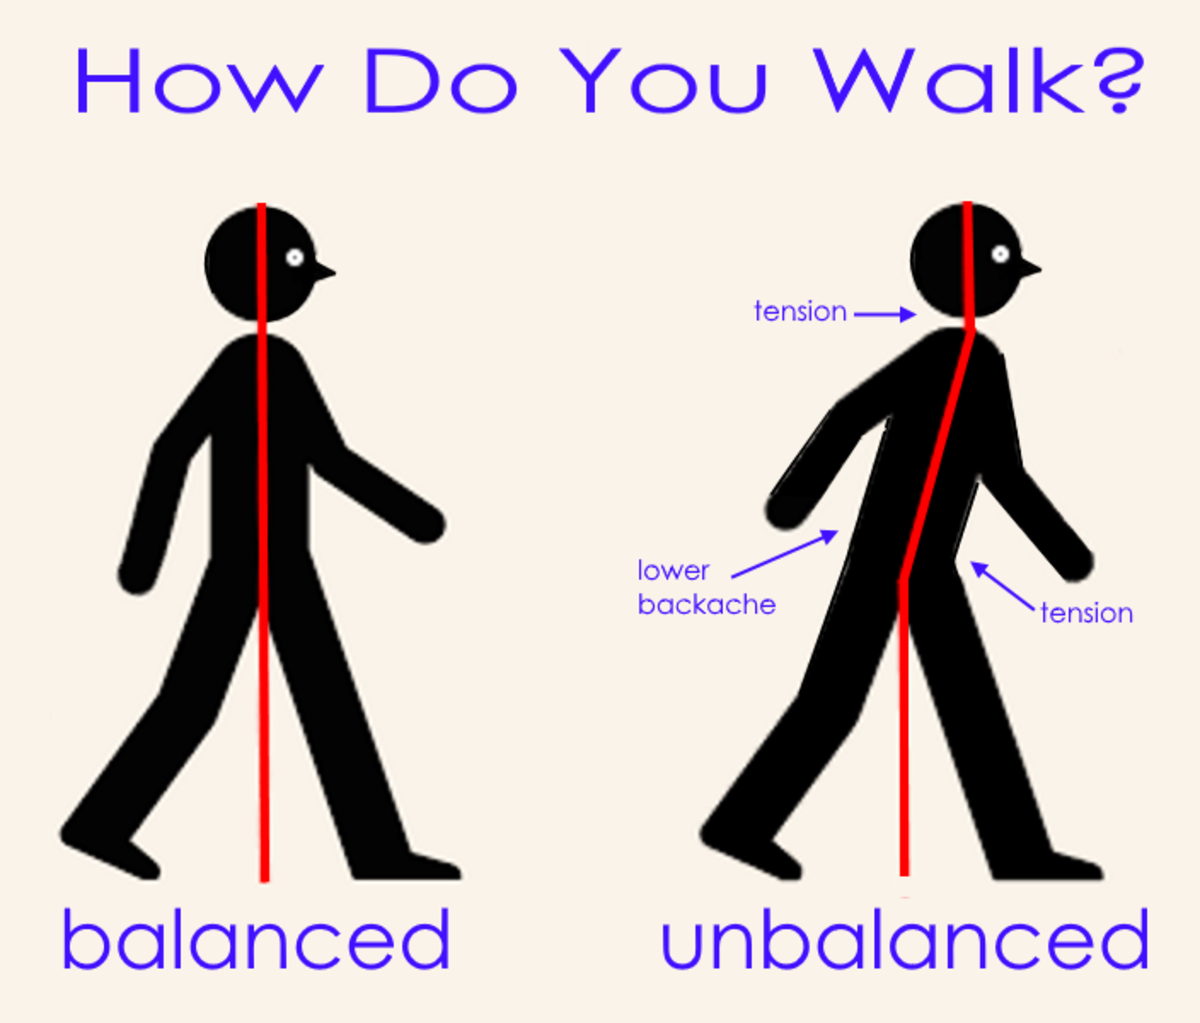 For balance in walking, lead with the pelvis, not the head.